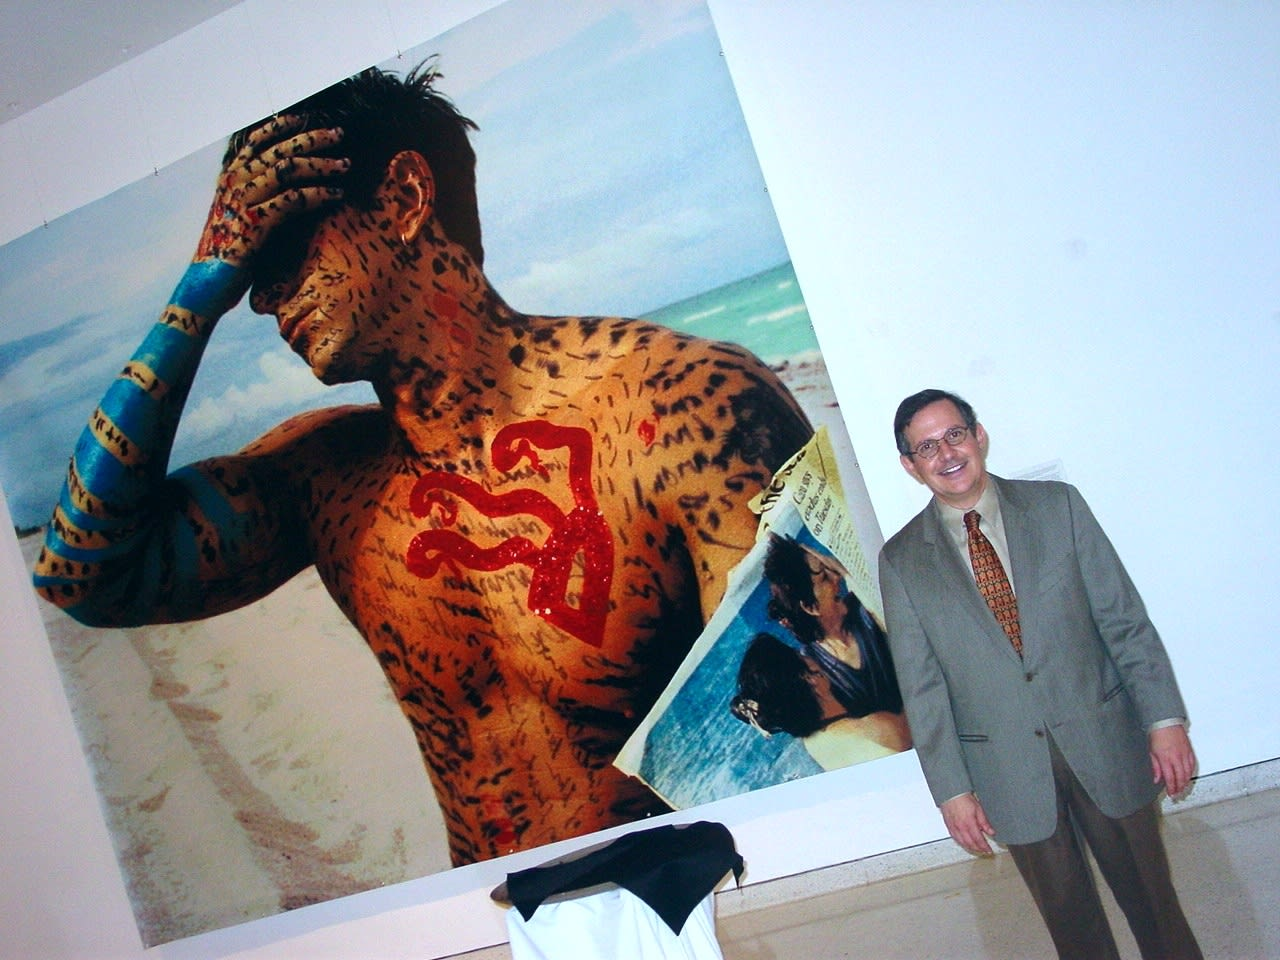 Contemporary Cuban Photography: A Panoramic View